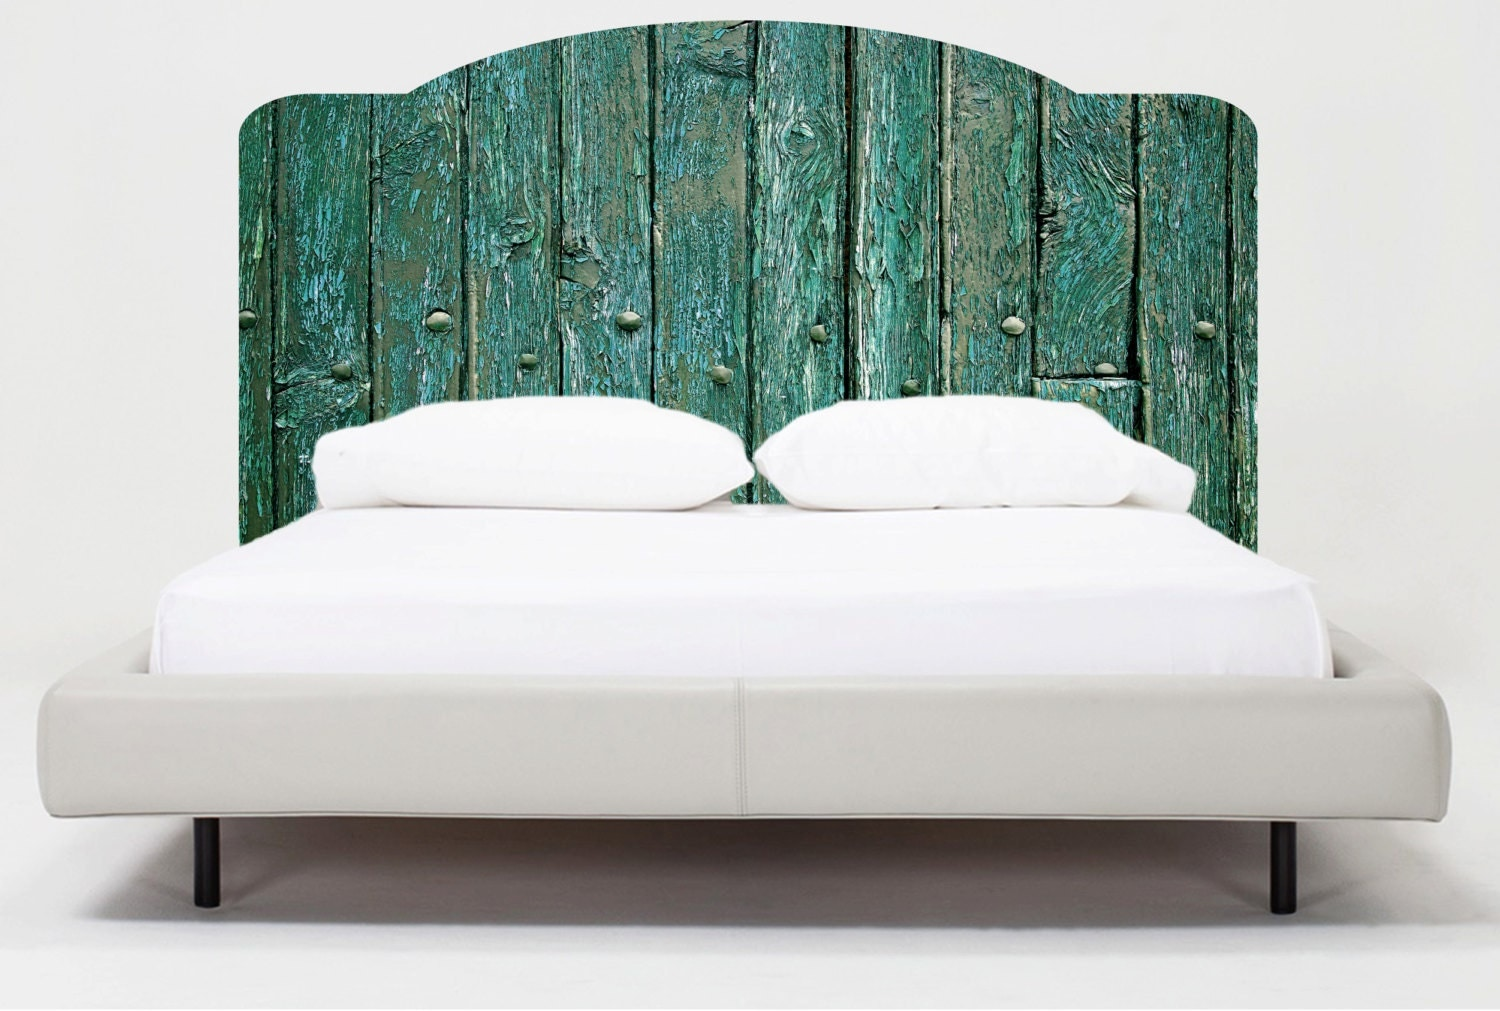 Bedroom Headboard Mural Decals Reusable Headborads Modern